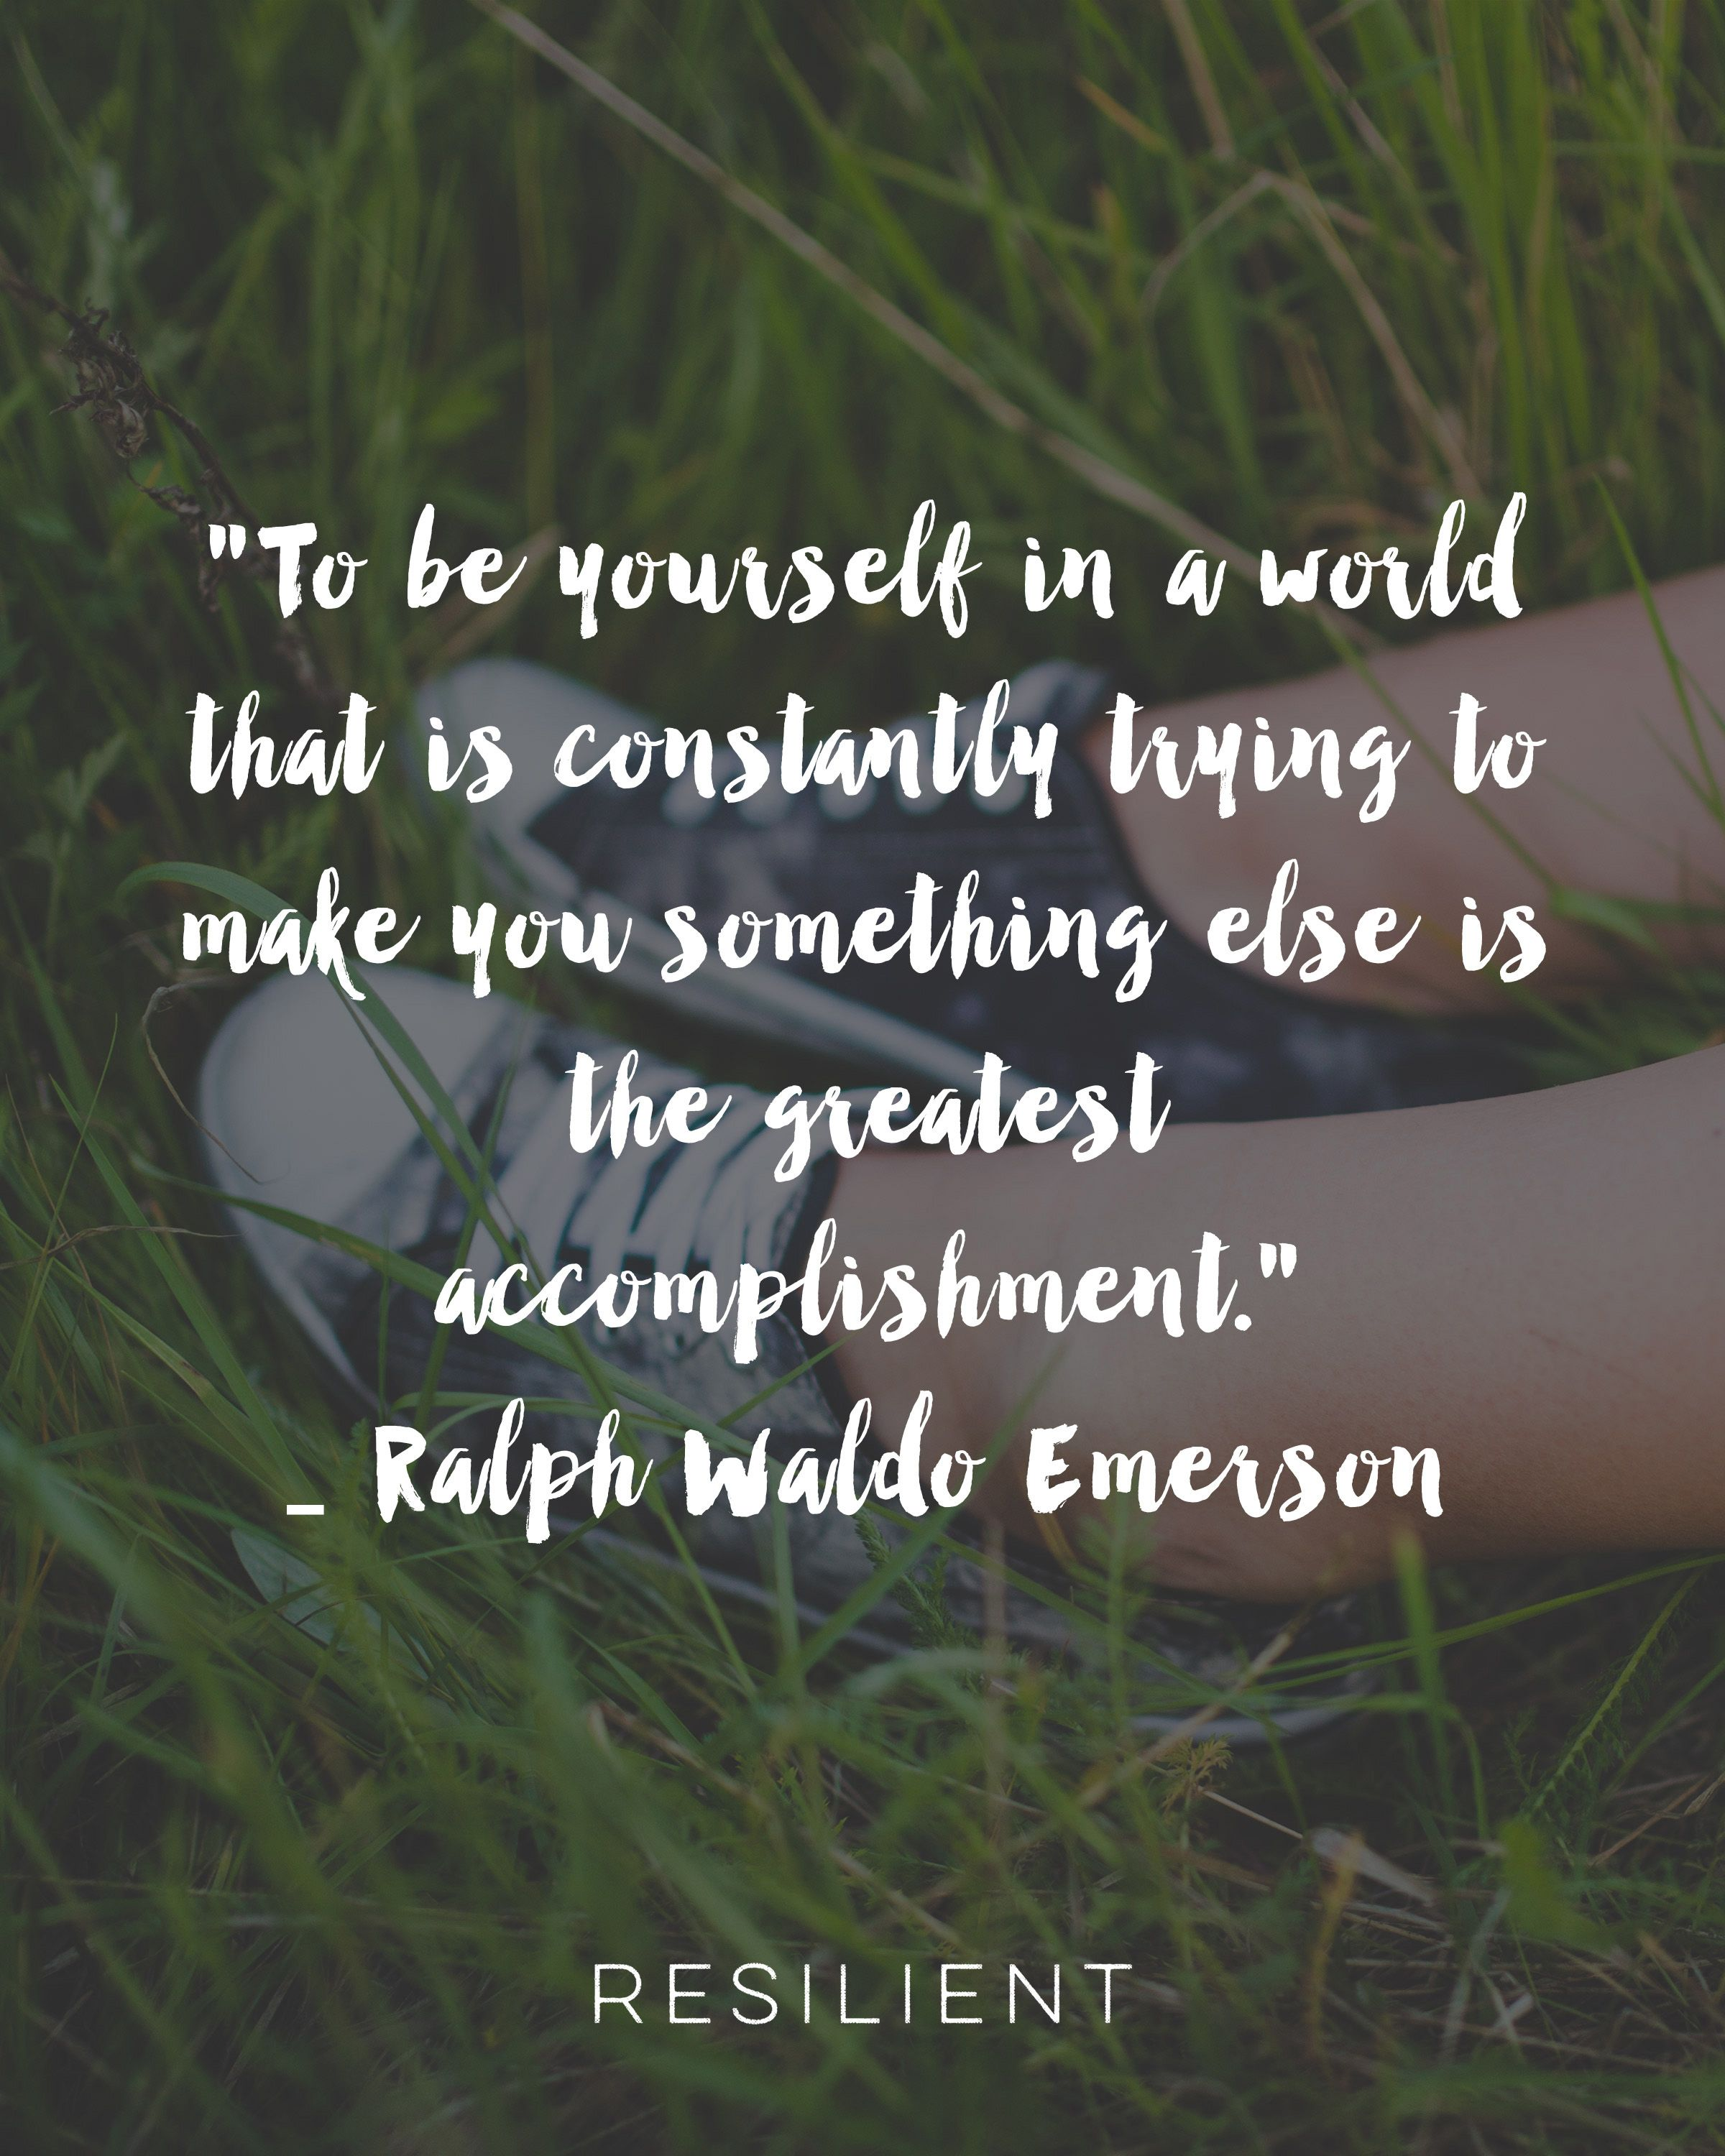 """""""To be yourself in a world that is constantly trying to make you something else is the greatest accomplishment."""" - Ralph Waldo Emerson"""